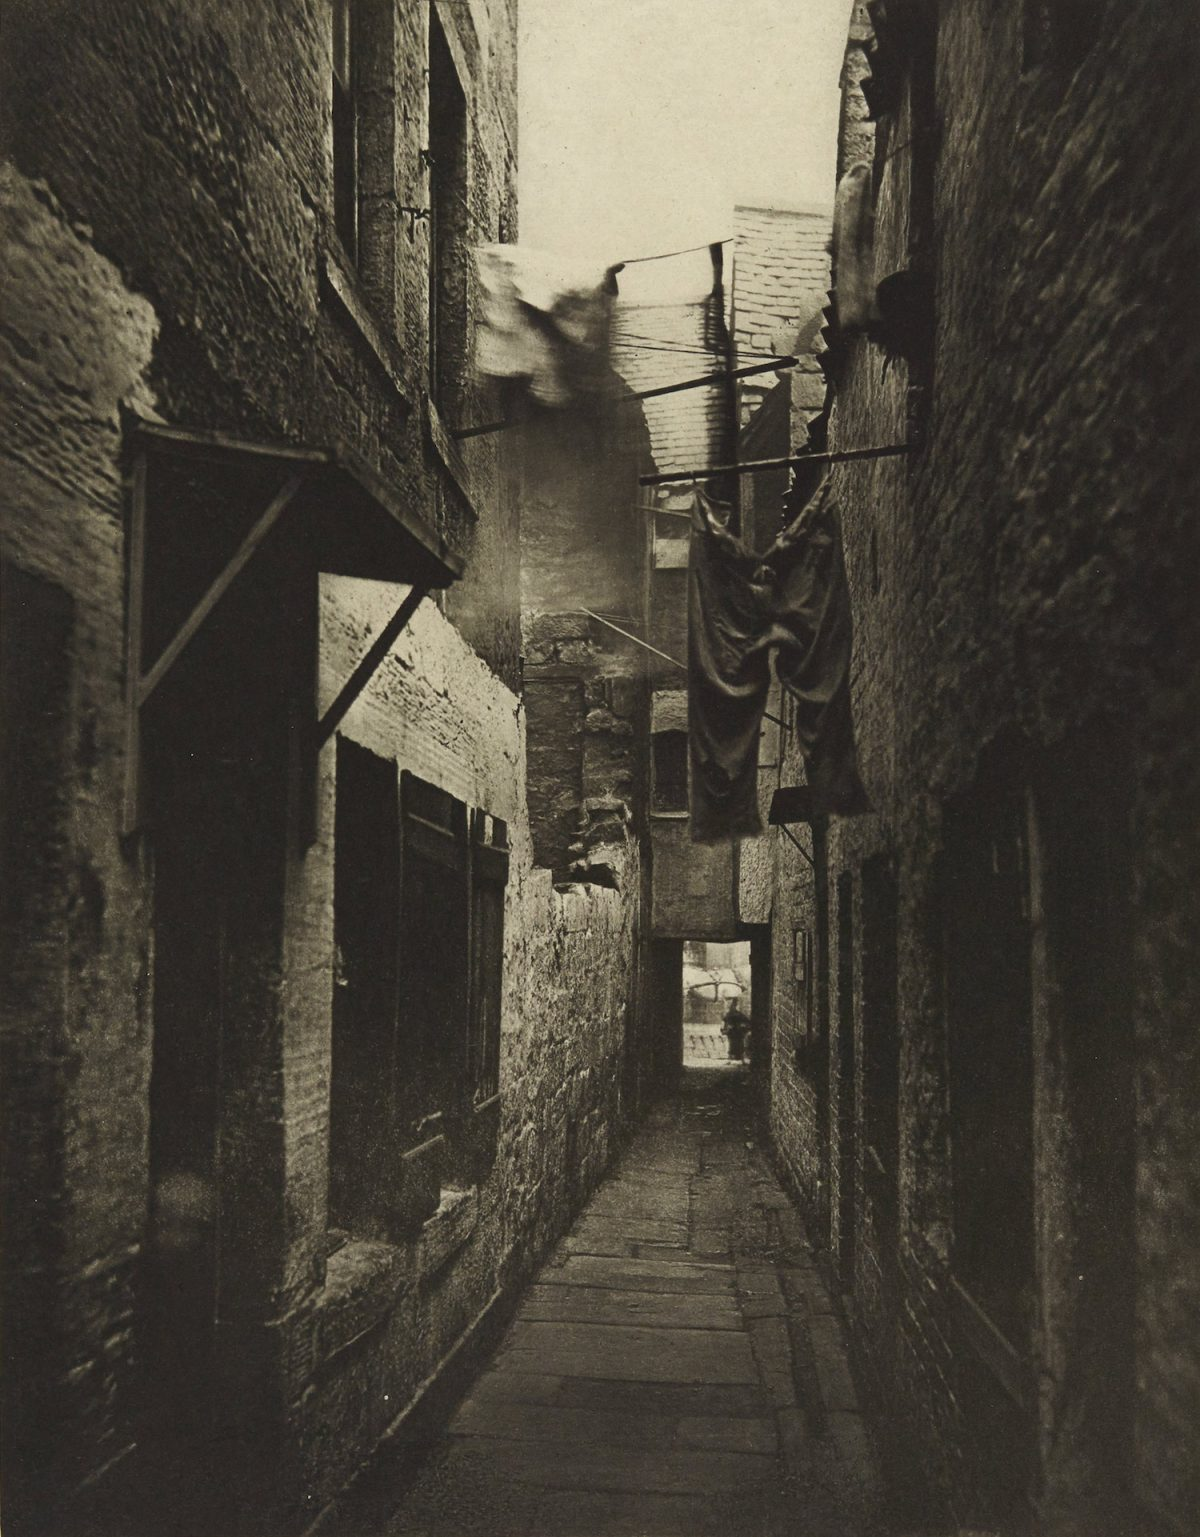 Thomas Annan, Glasgow, photography, 1800s